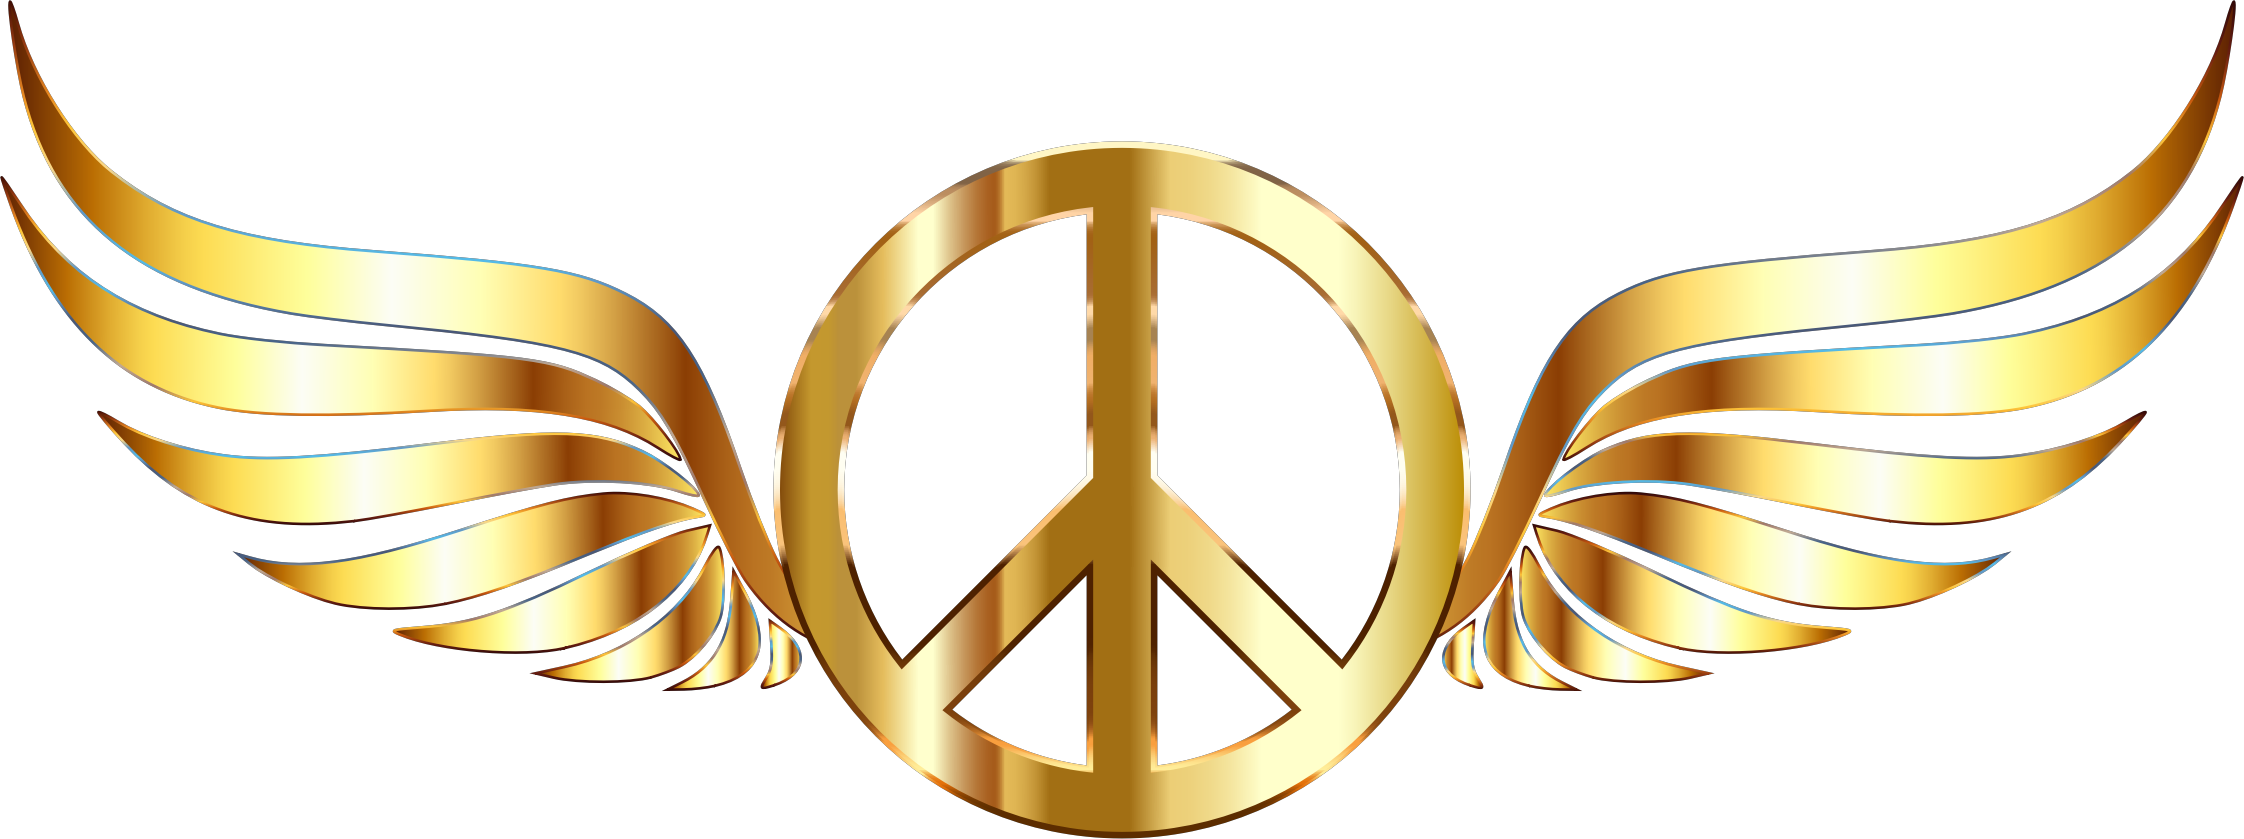 Gold Peace Sign Wings No Background by GDJ